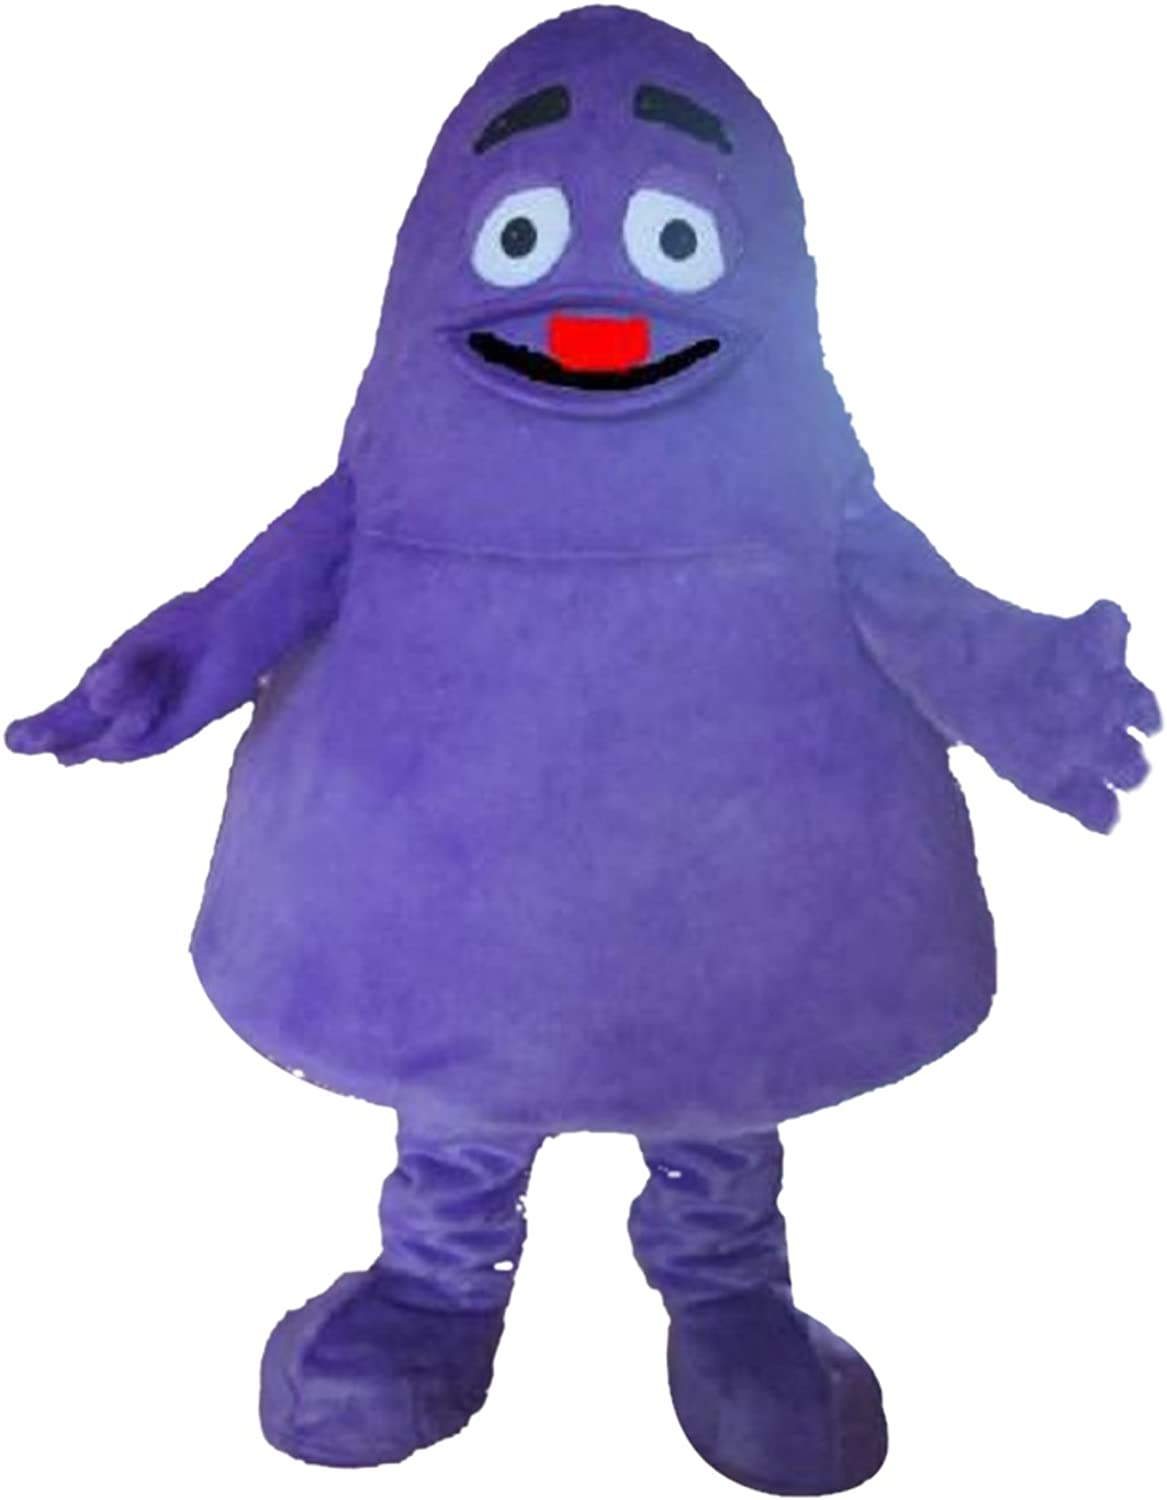 Grimace Purple Monster Mascot Costume Real Picture